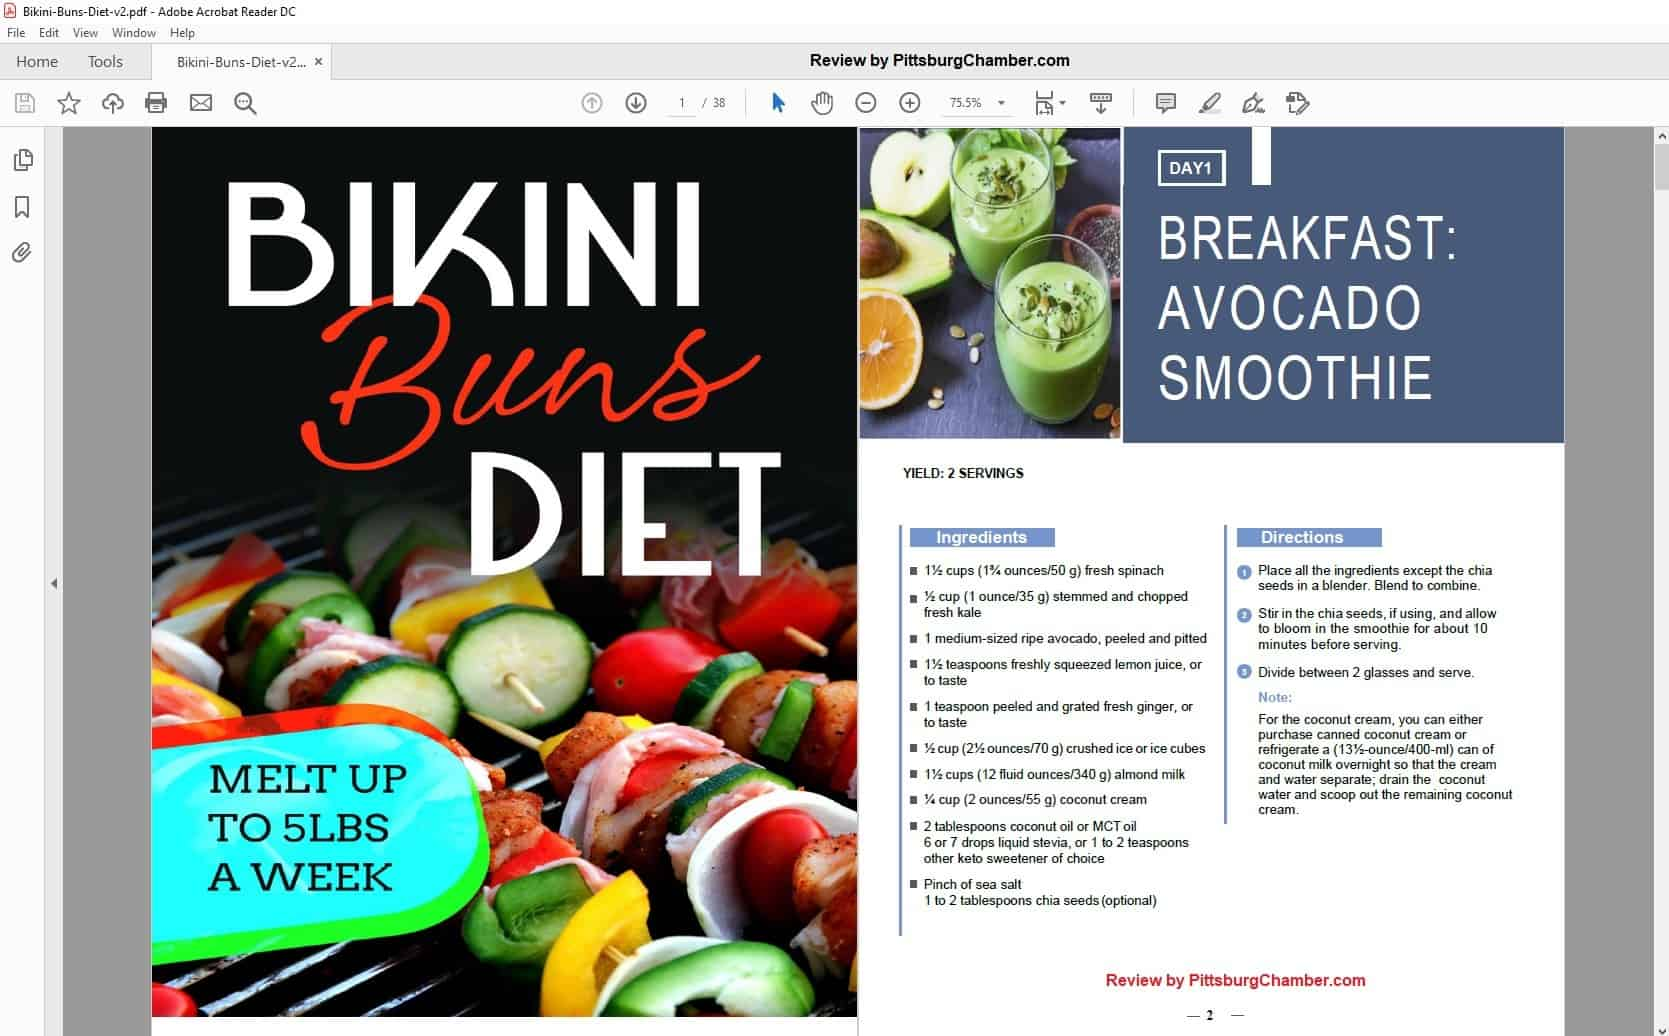 Stephanie H.'s Bikini Buns Table of Contents